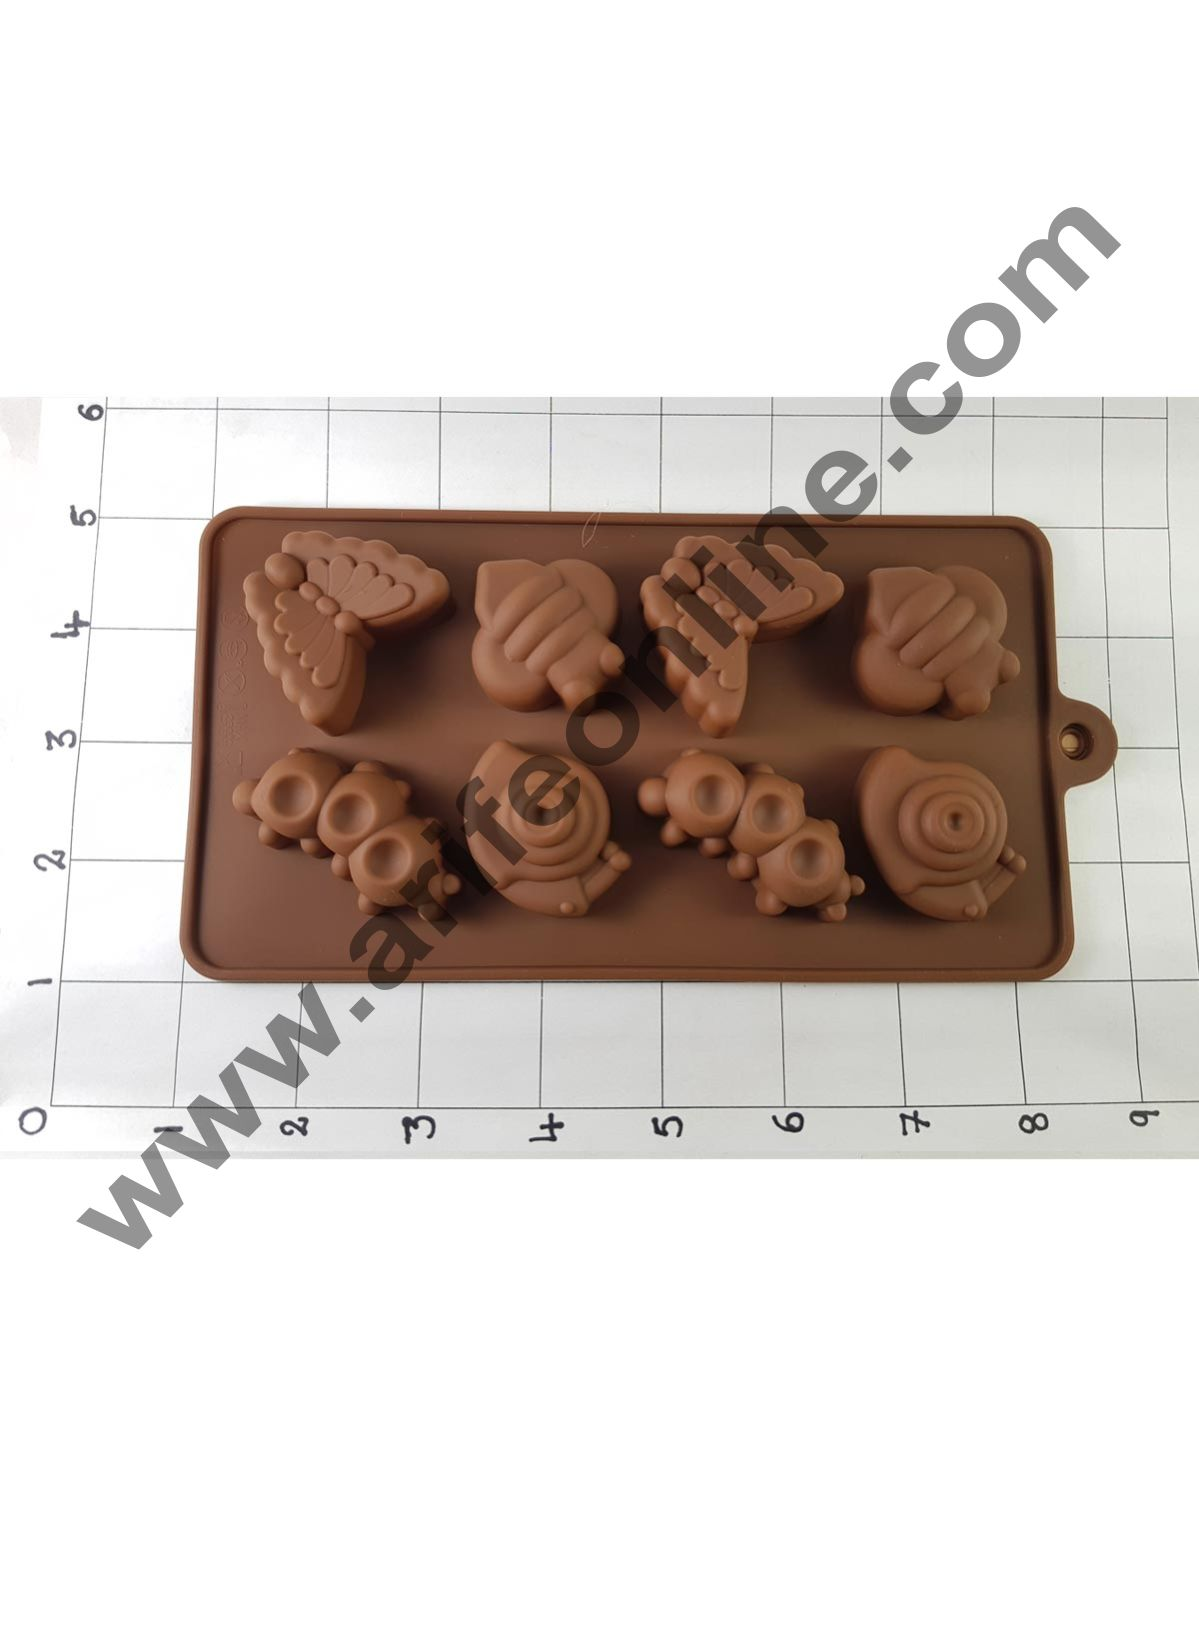 Cake Decor Silicon 8 Cavity Butterfly And Catterpilar Shape Brown Chocolate Mould, Ice Mould, Chocolate Decorating Mould